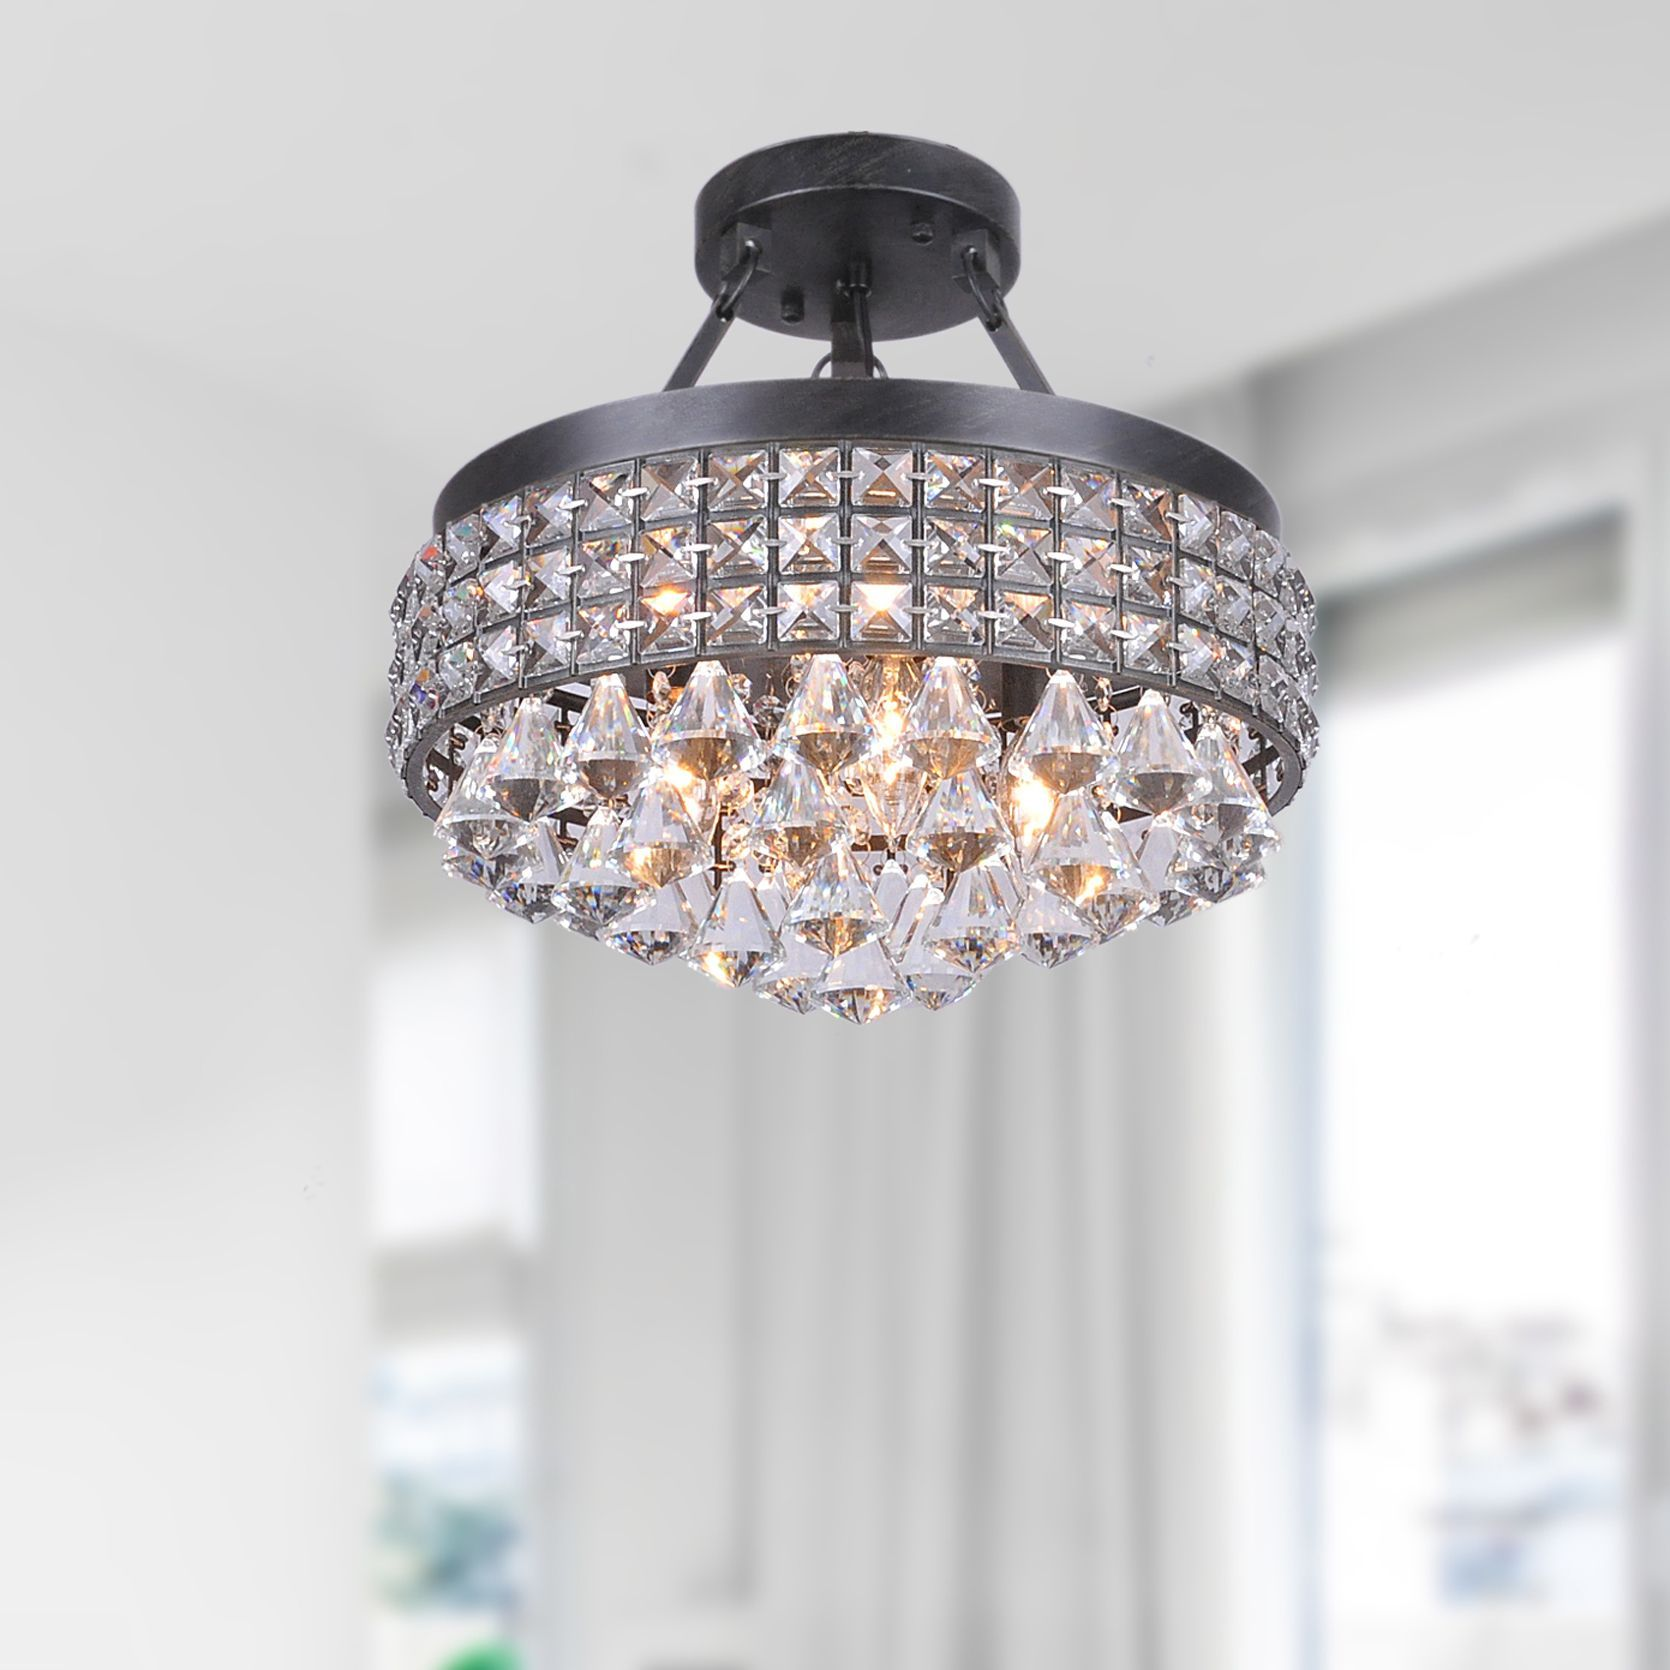 Bathroom Light Fixture Antonia Crystal Semi Flush Mount Chandelier With Antique Bronze Iron Shade